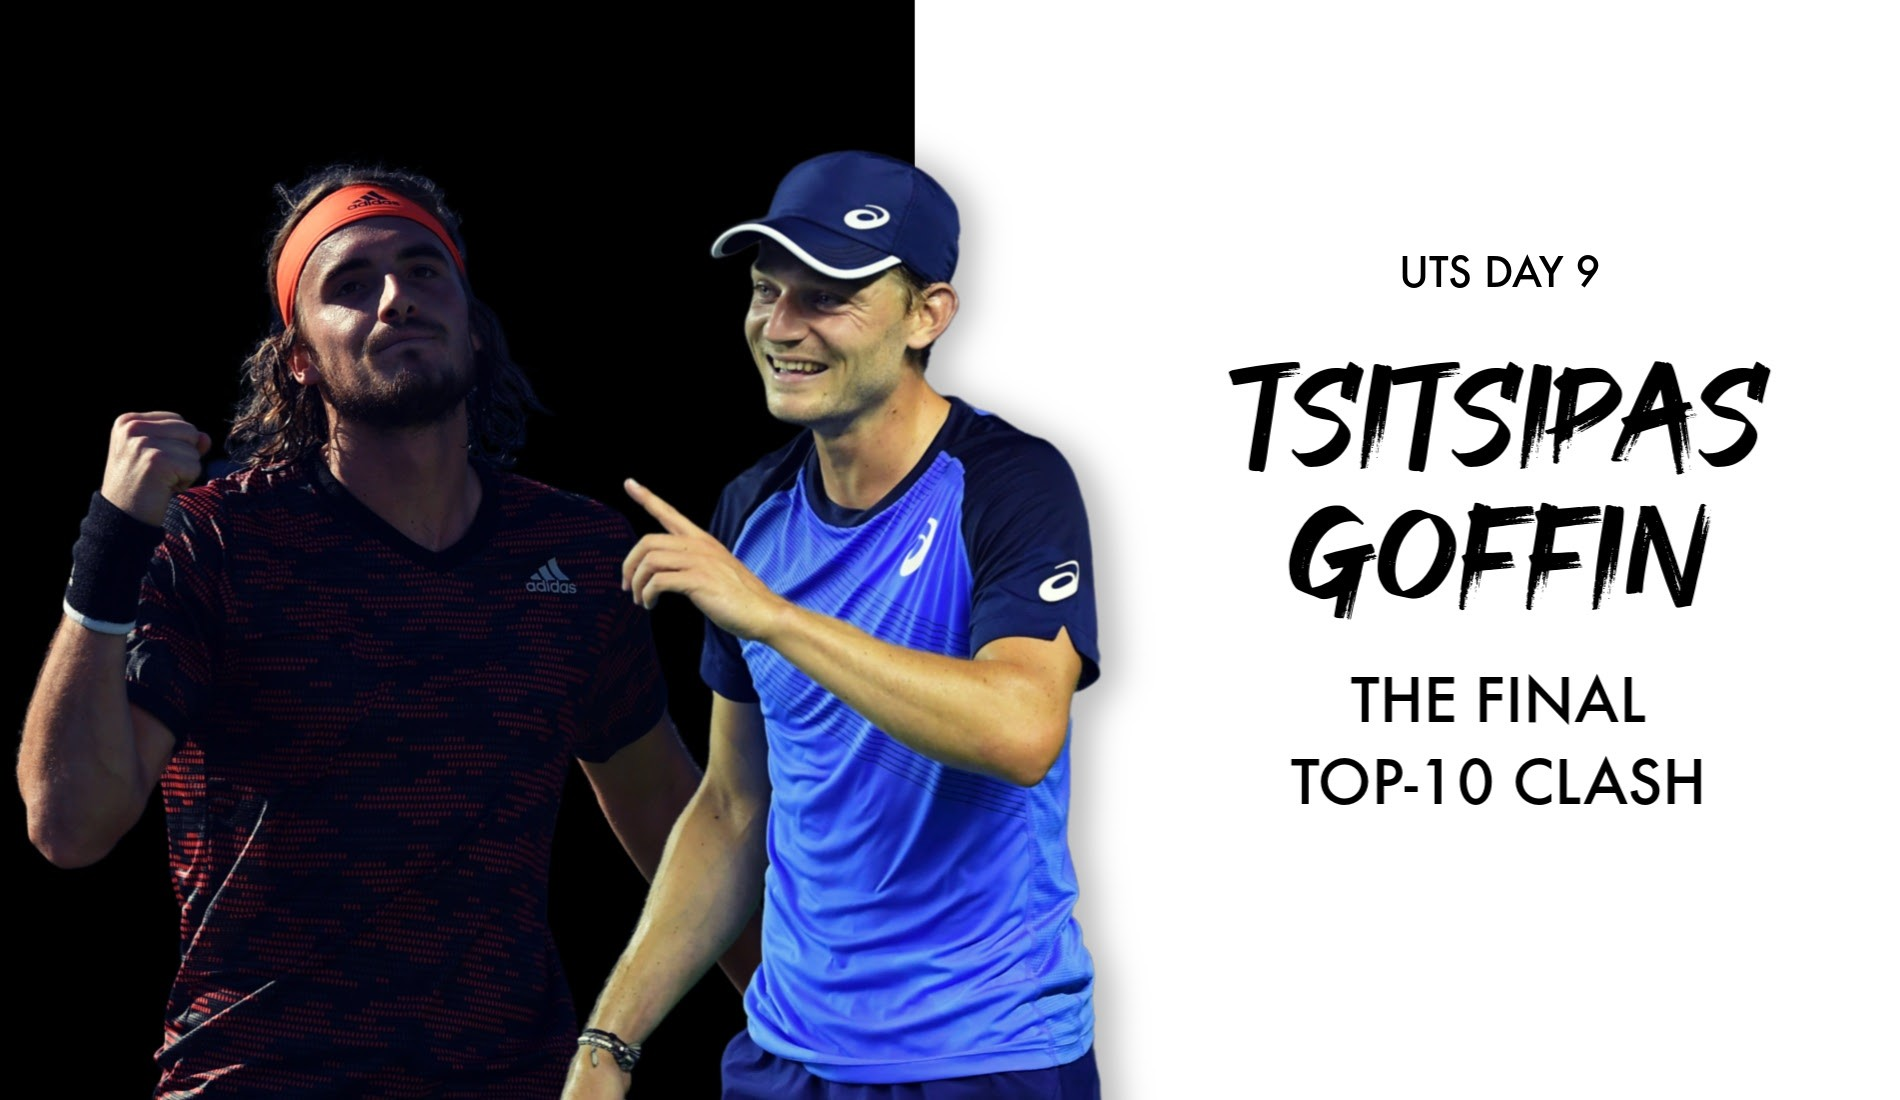 David Goffin faces Stef Tsitsipas on UTS Day 9